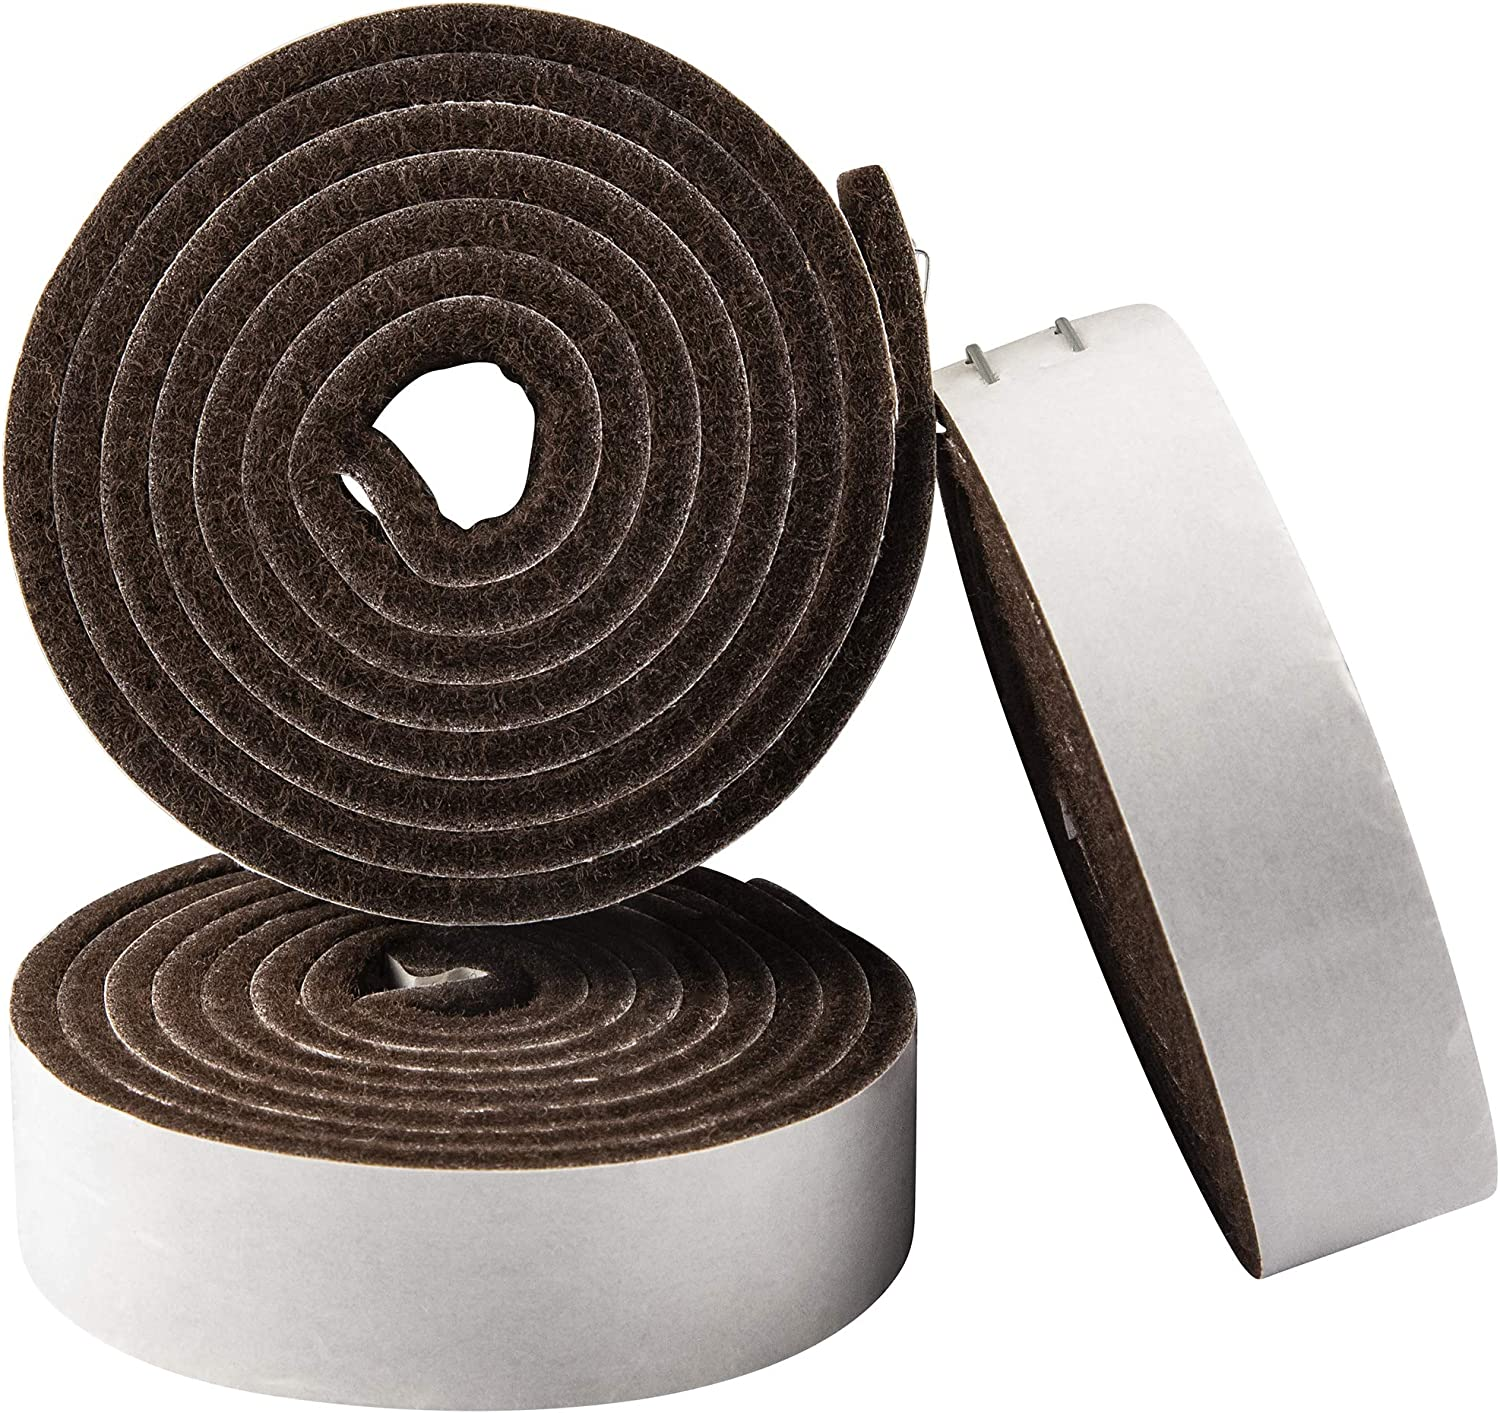 """SoftTouch 1 x 60"""" Self-Stick Heavy Duty Felt Strips with Adhesive Backing 1"""" x 60"""", 3 Pack Brown"""